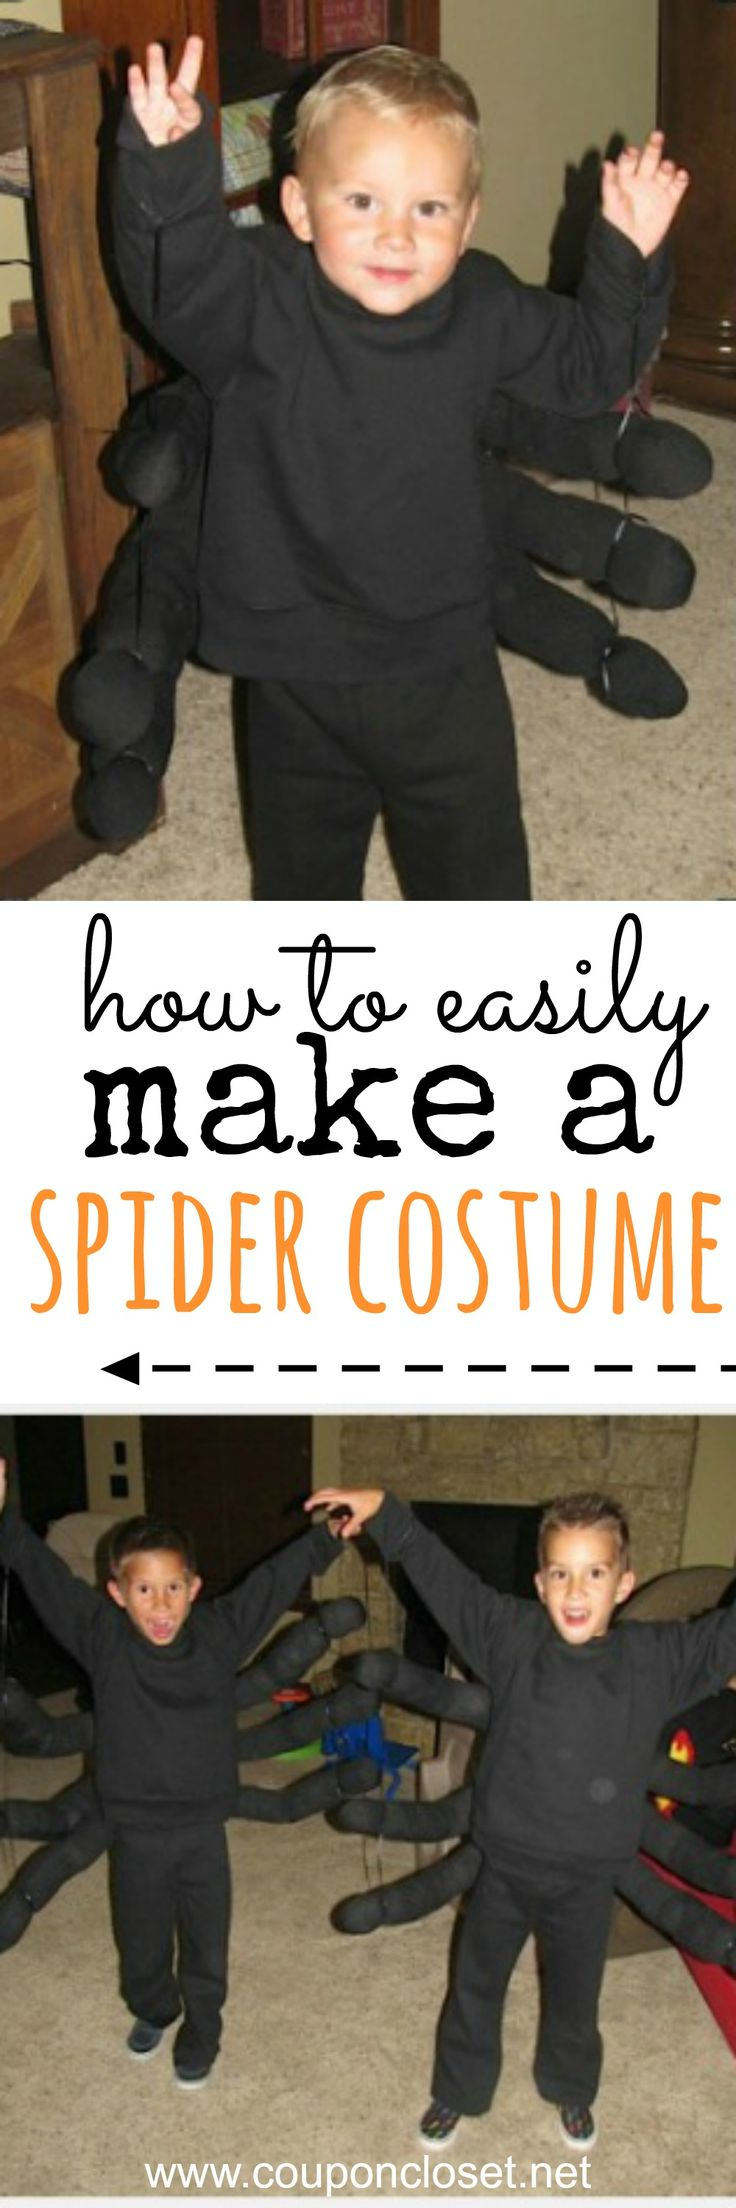 how to make a spider costume - quick and easy diy spider costume